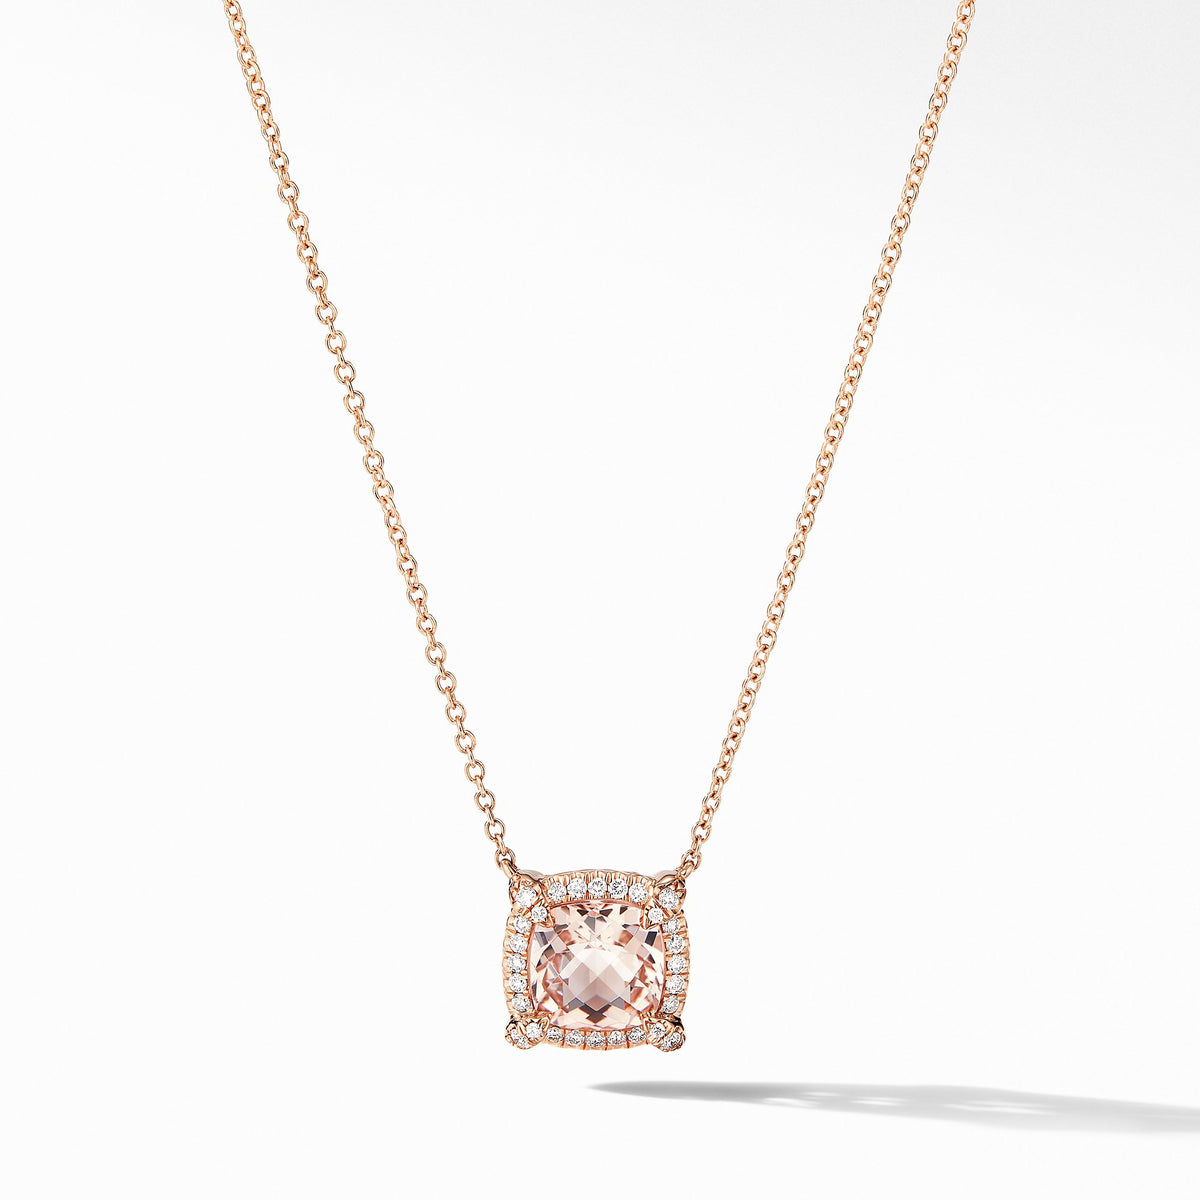 Petite Chatelaine Pave Bezel Pendant Necklace in 18K Rose Gold with Morganite